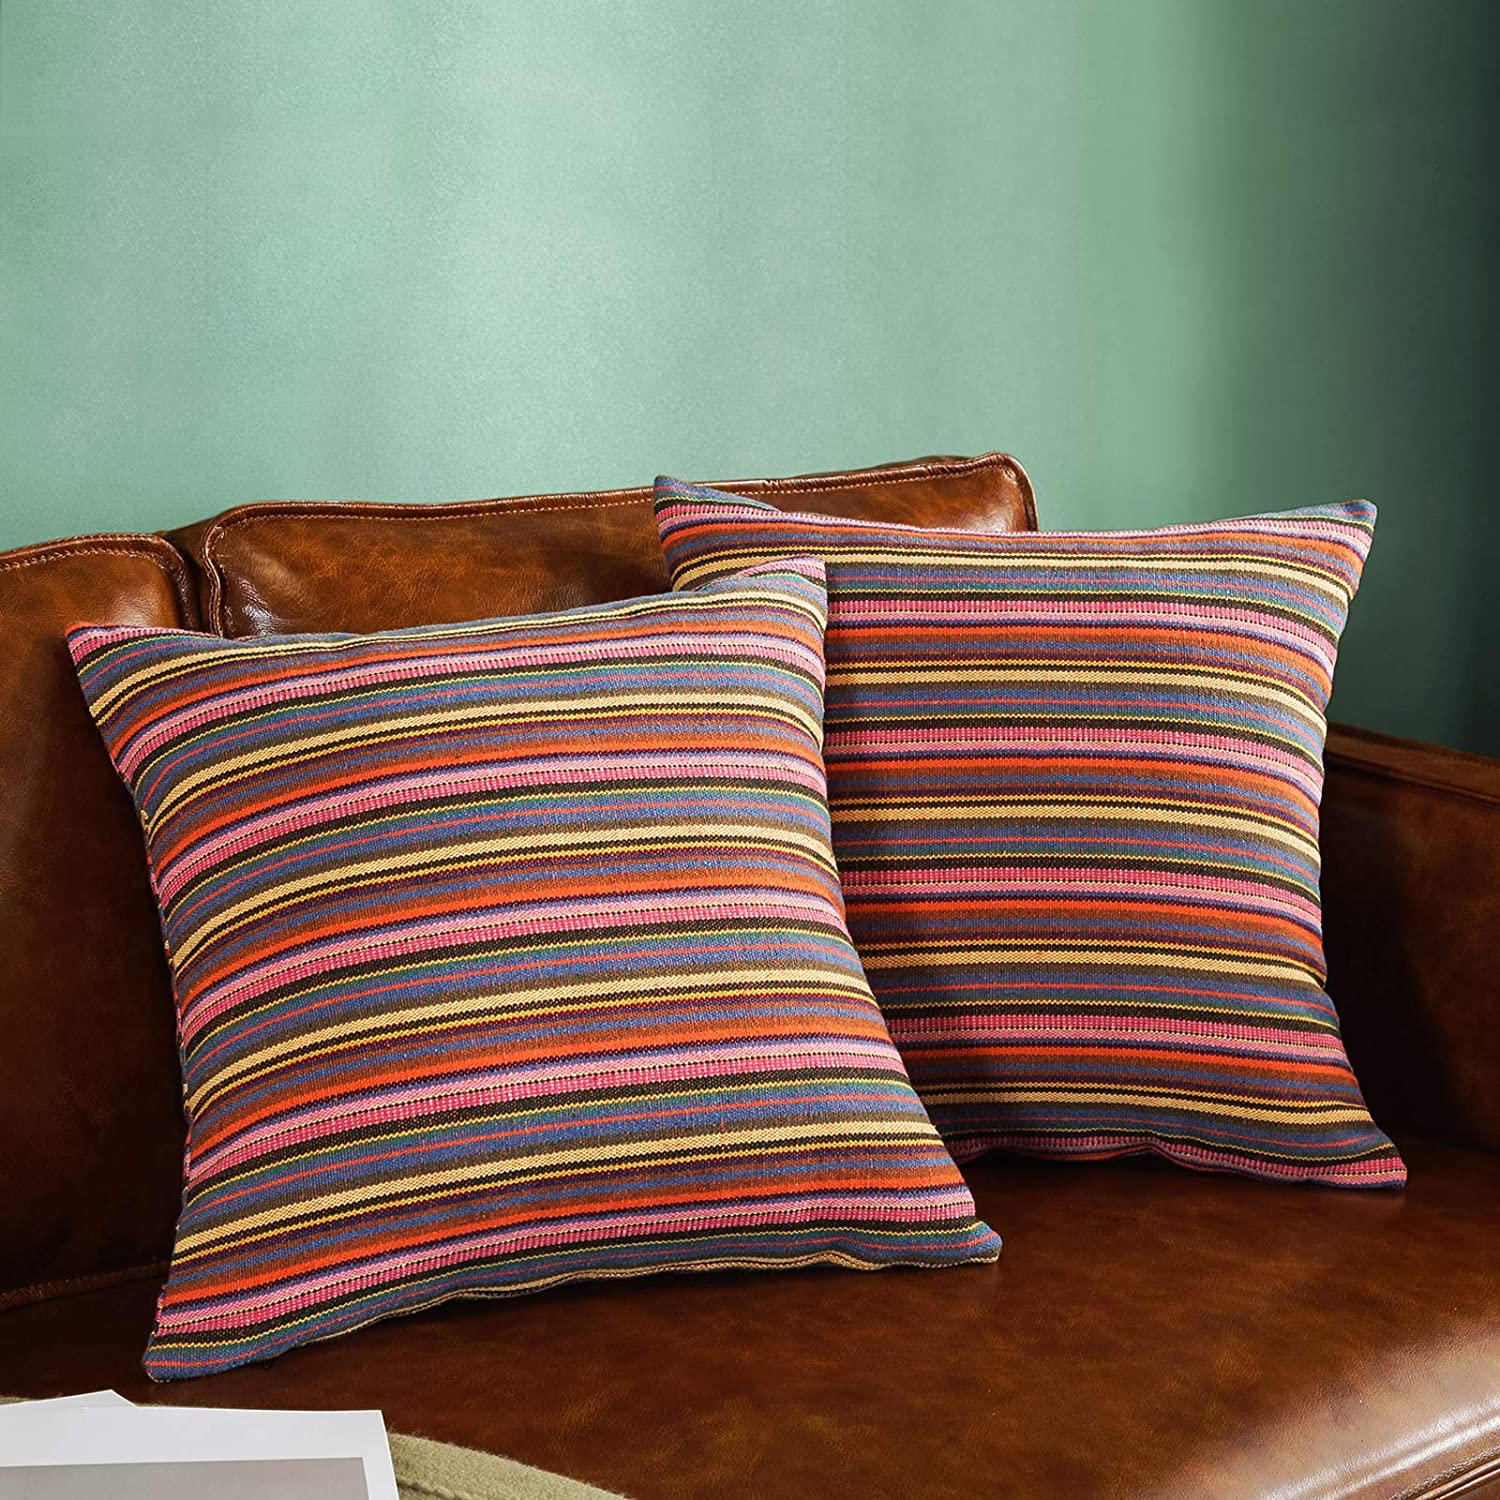 AmHoo Bohemian Retro Stripe Throw Pillow Covers Boho Ethnic Double-Sided Pattern Set of 2 Pillowcase for Couch Sofa Bed Livingroom 16x16Inch Pink Orange